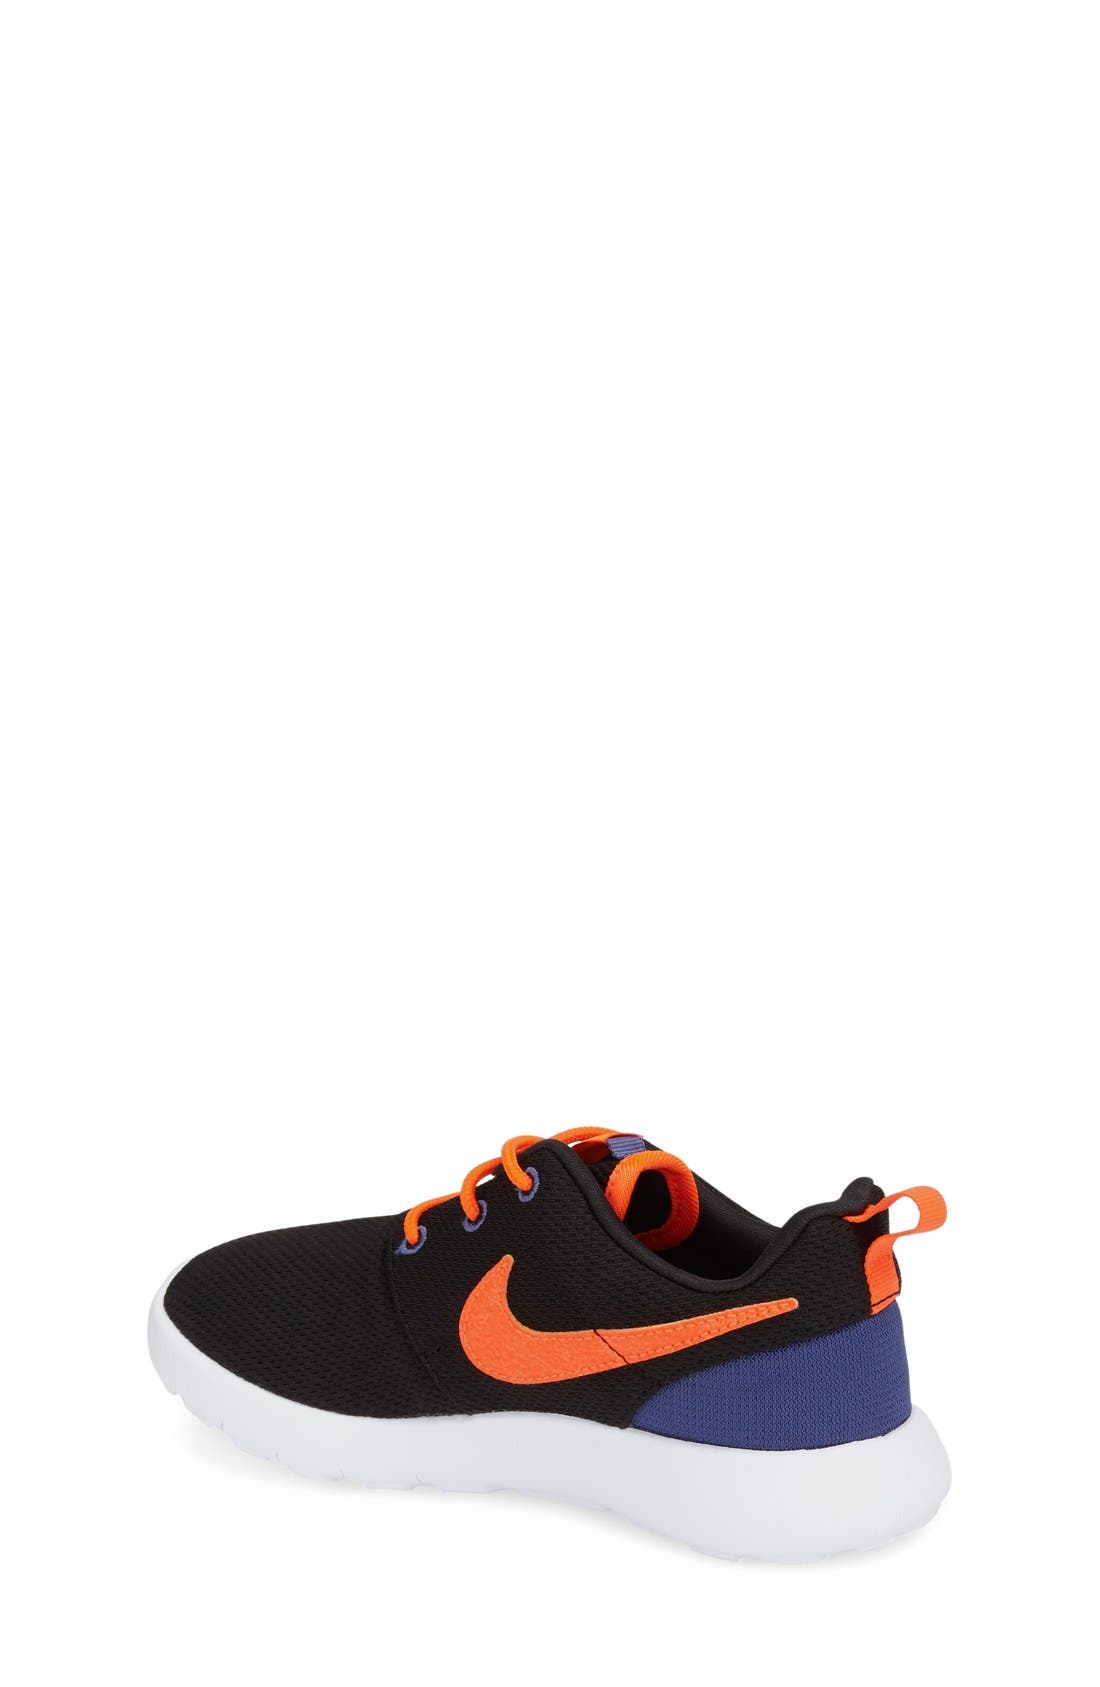 Roshe Run Sneaker,                             Alternate thumbnail 43, color,